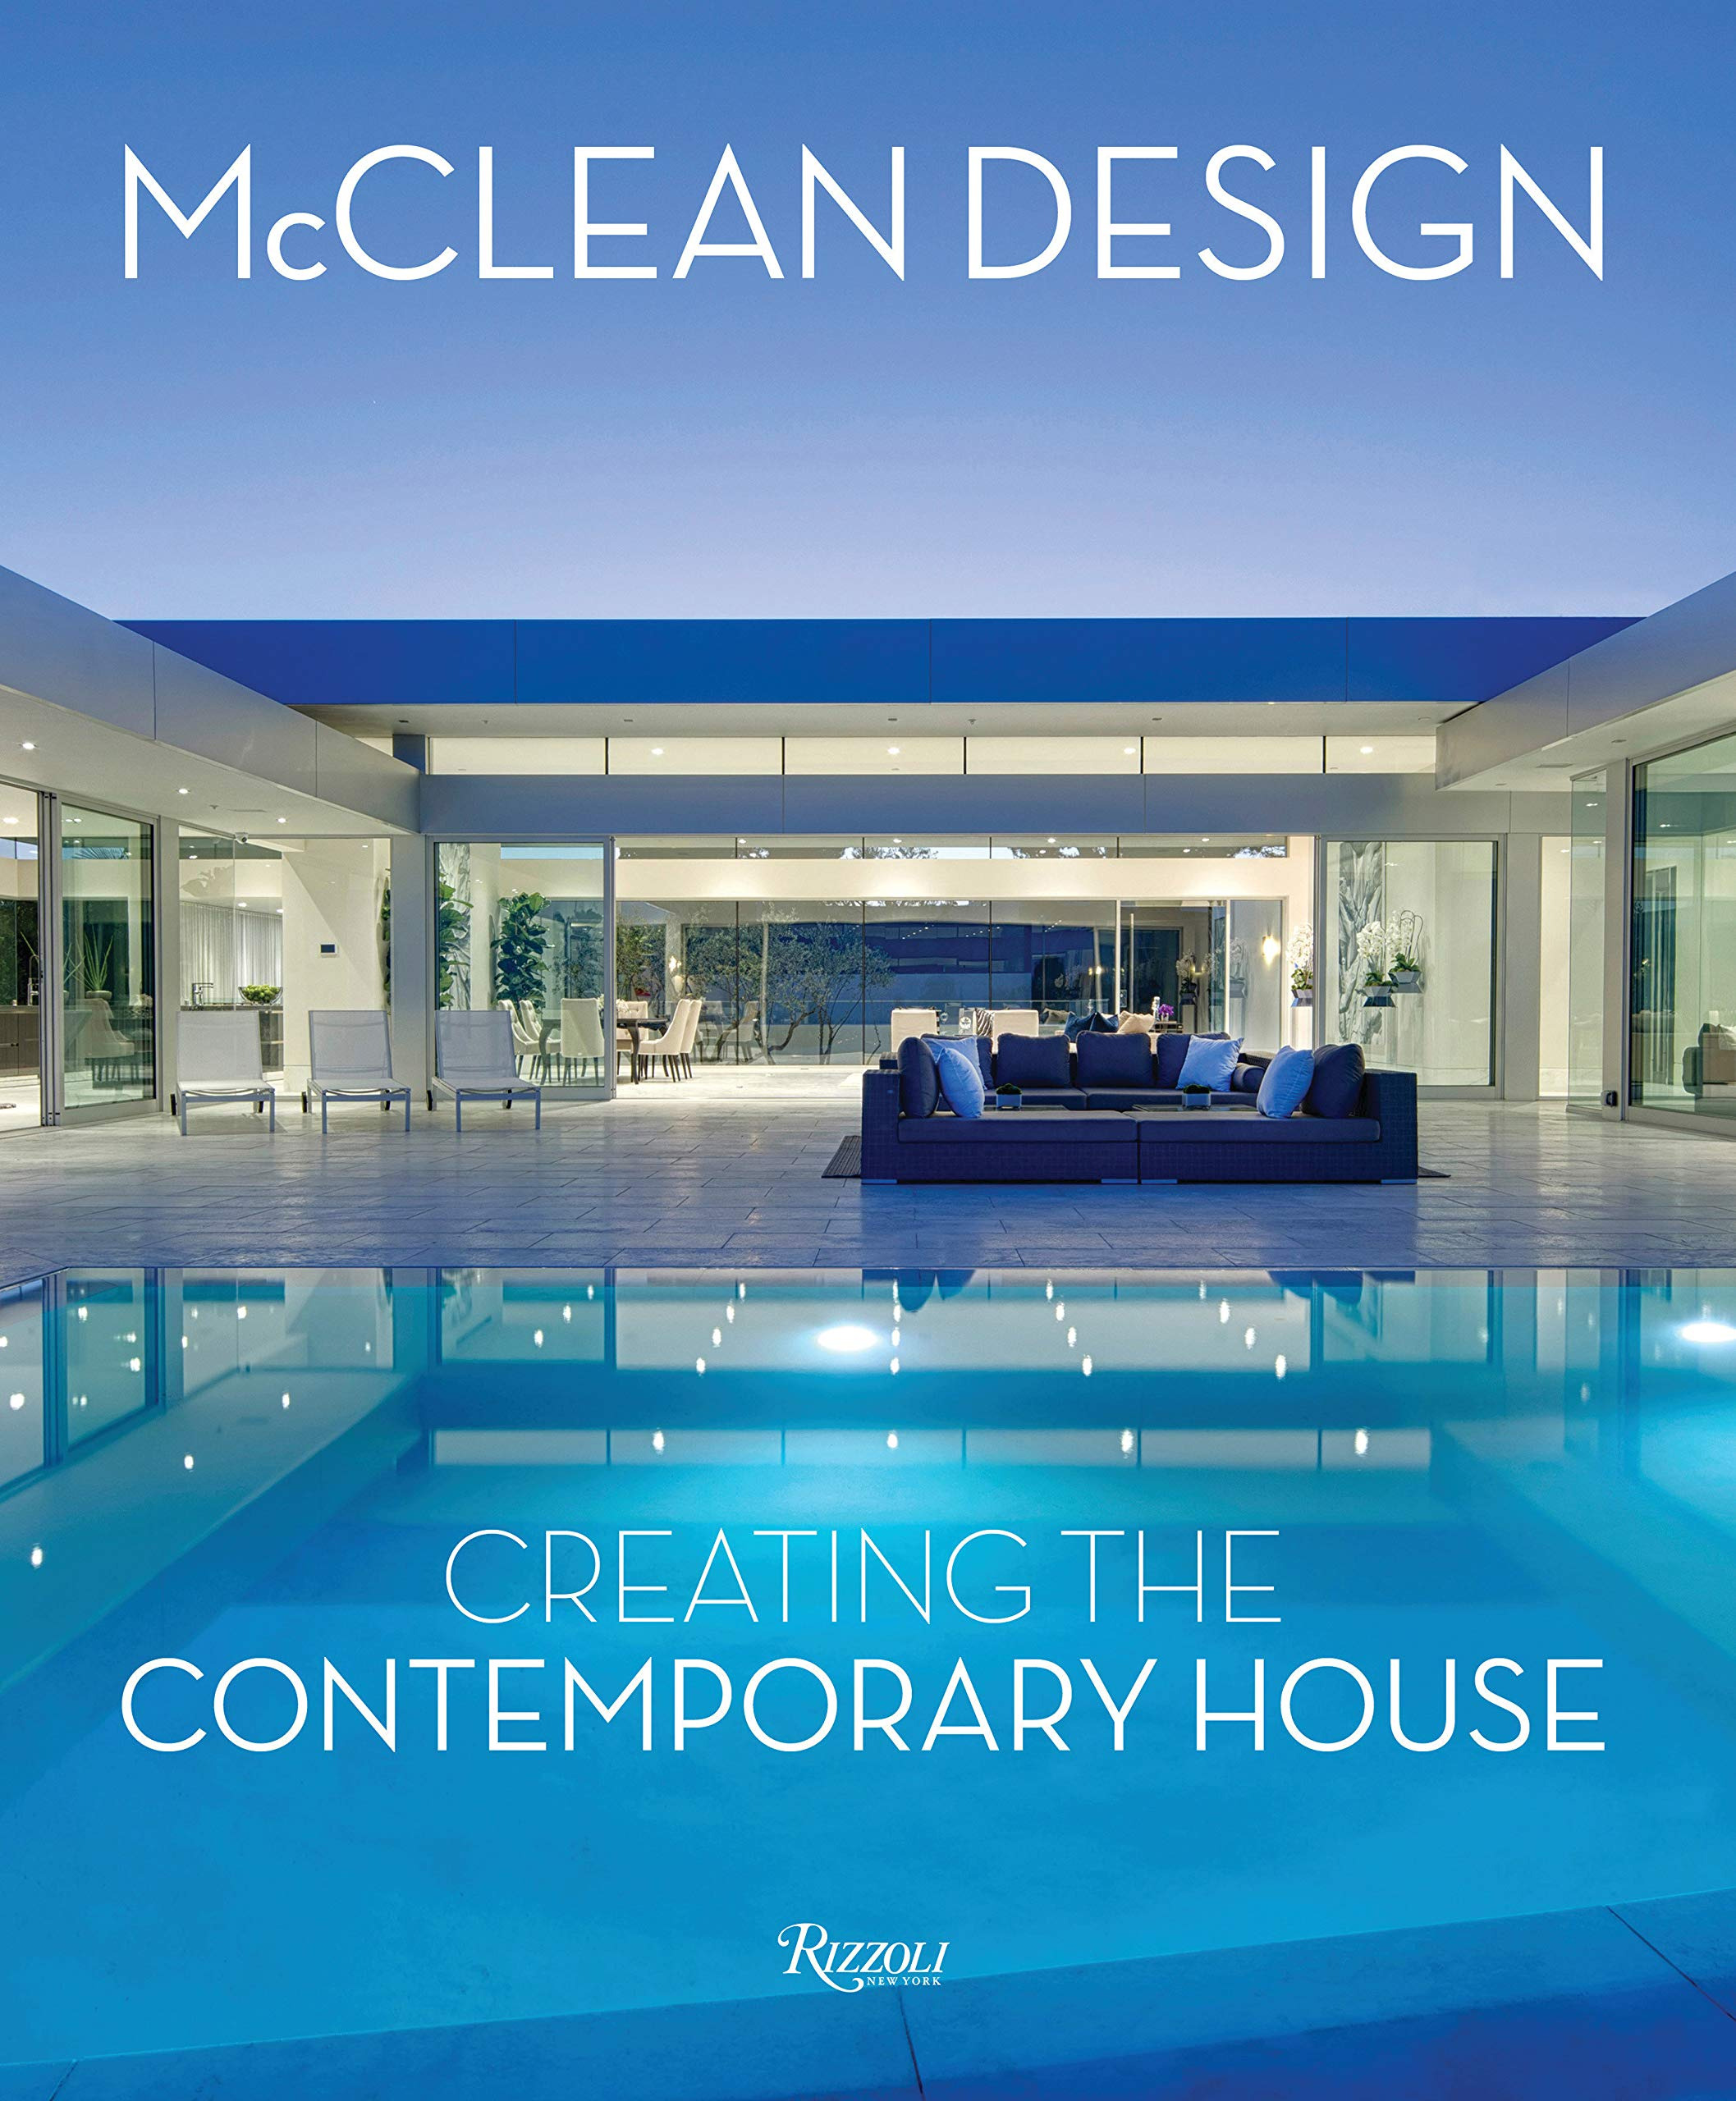 Ultra Modern Contemporary House Plans New Mcclean Design Creating the Contemporary House Jodidio